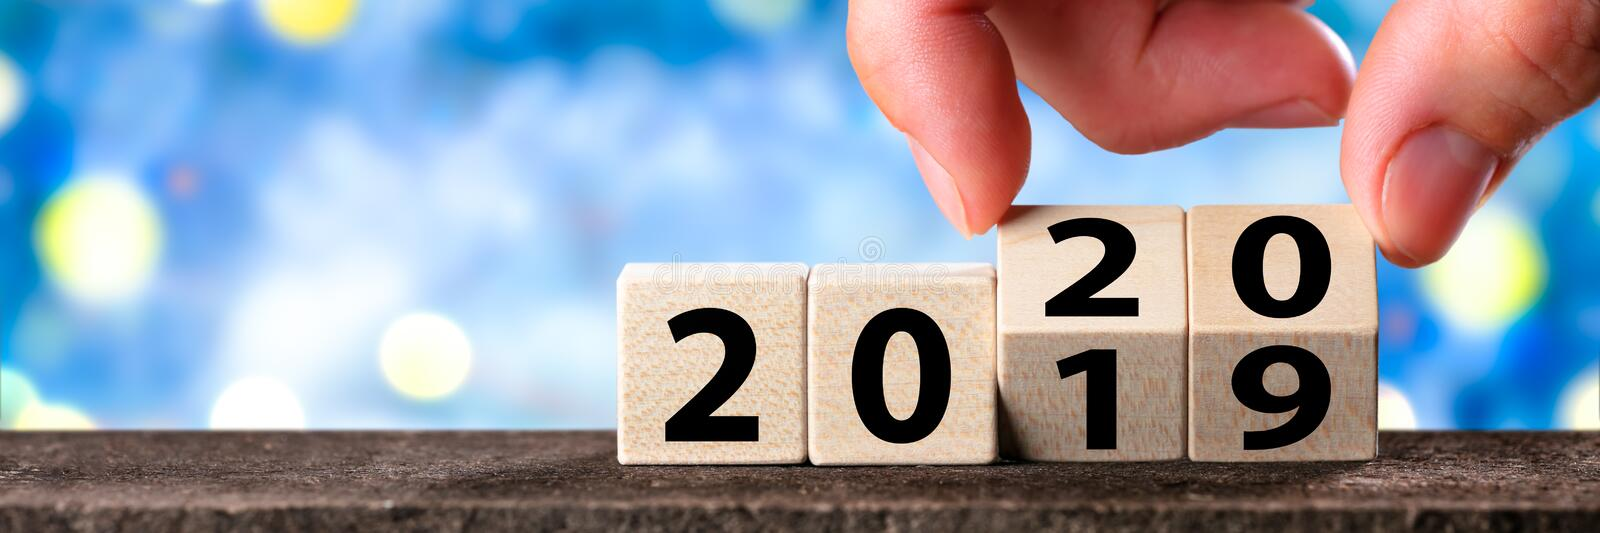 Hand Changing Date From 2019 To 2020 stock images